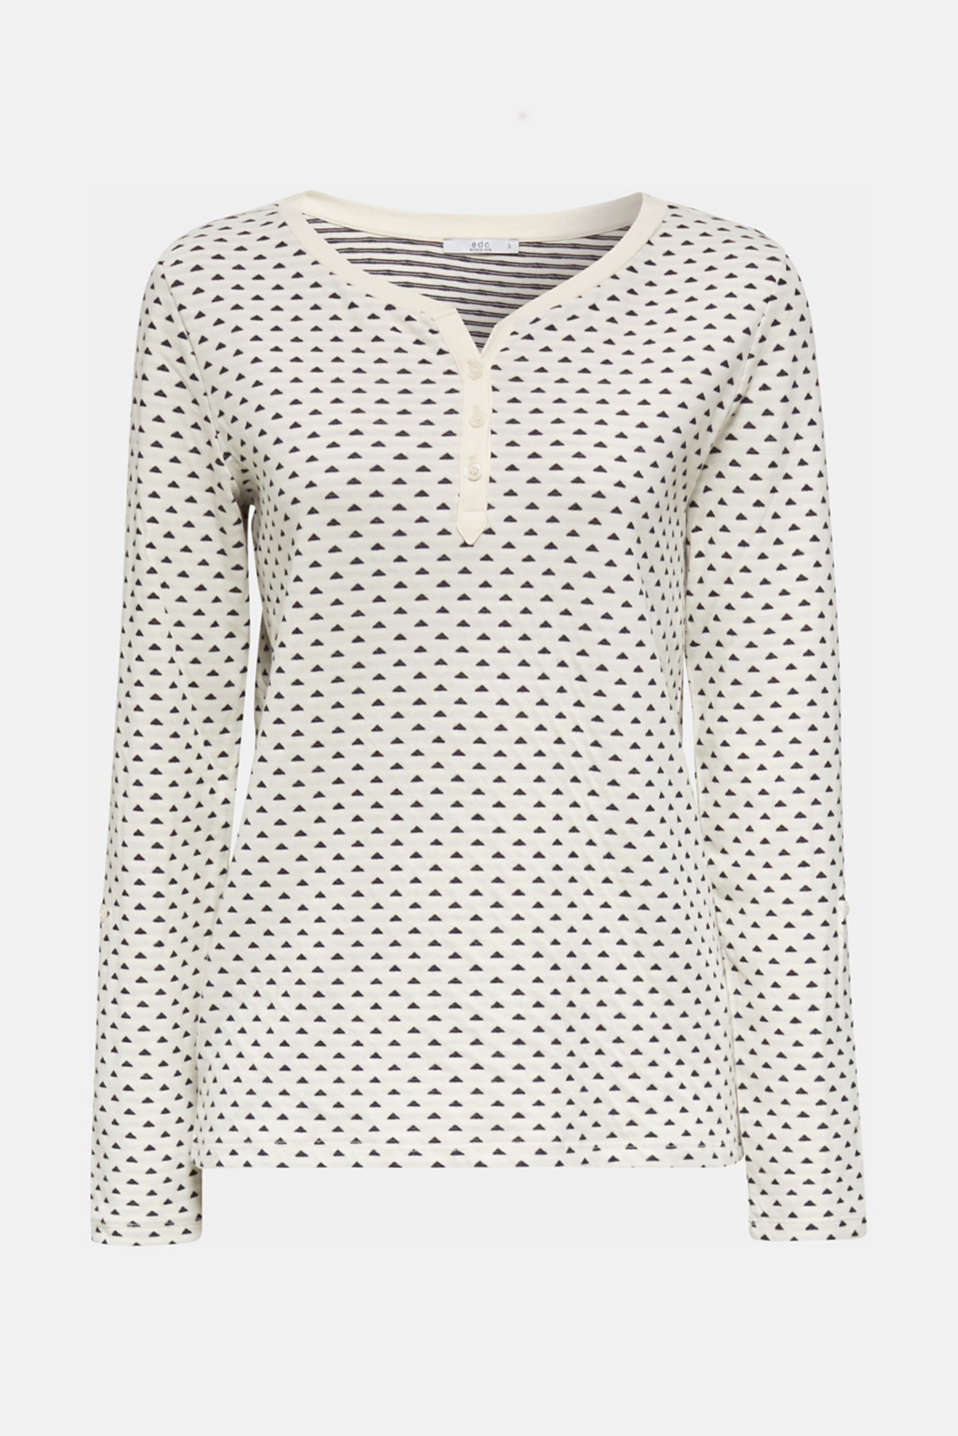 Double-faced jersey long sleeve top, 100% cotton, OFF WHITE, detail image number 7